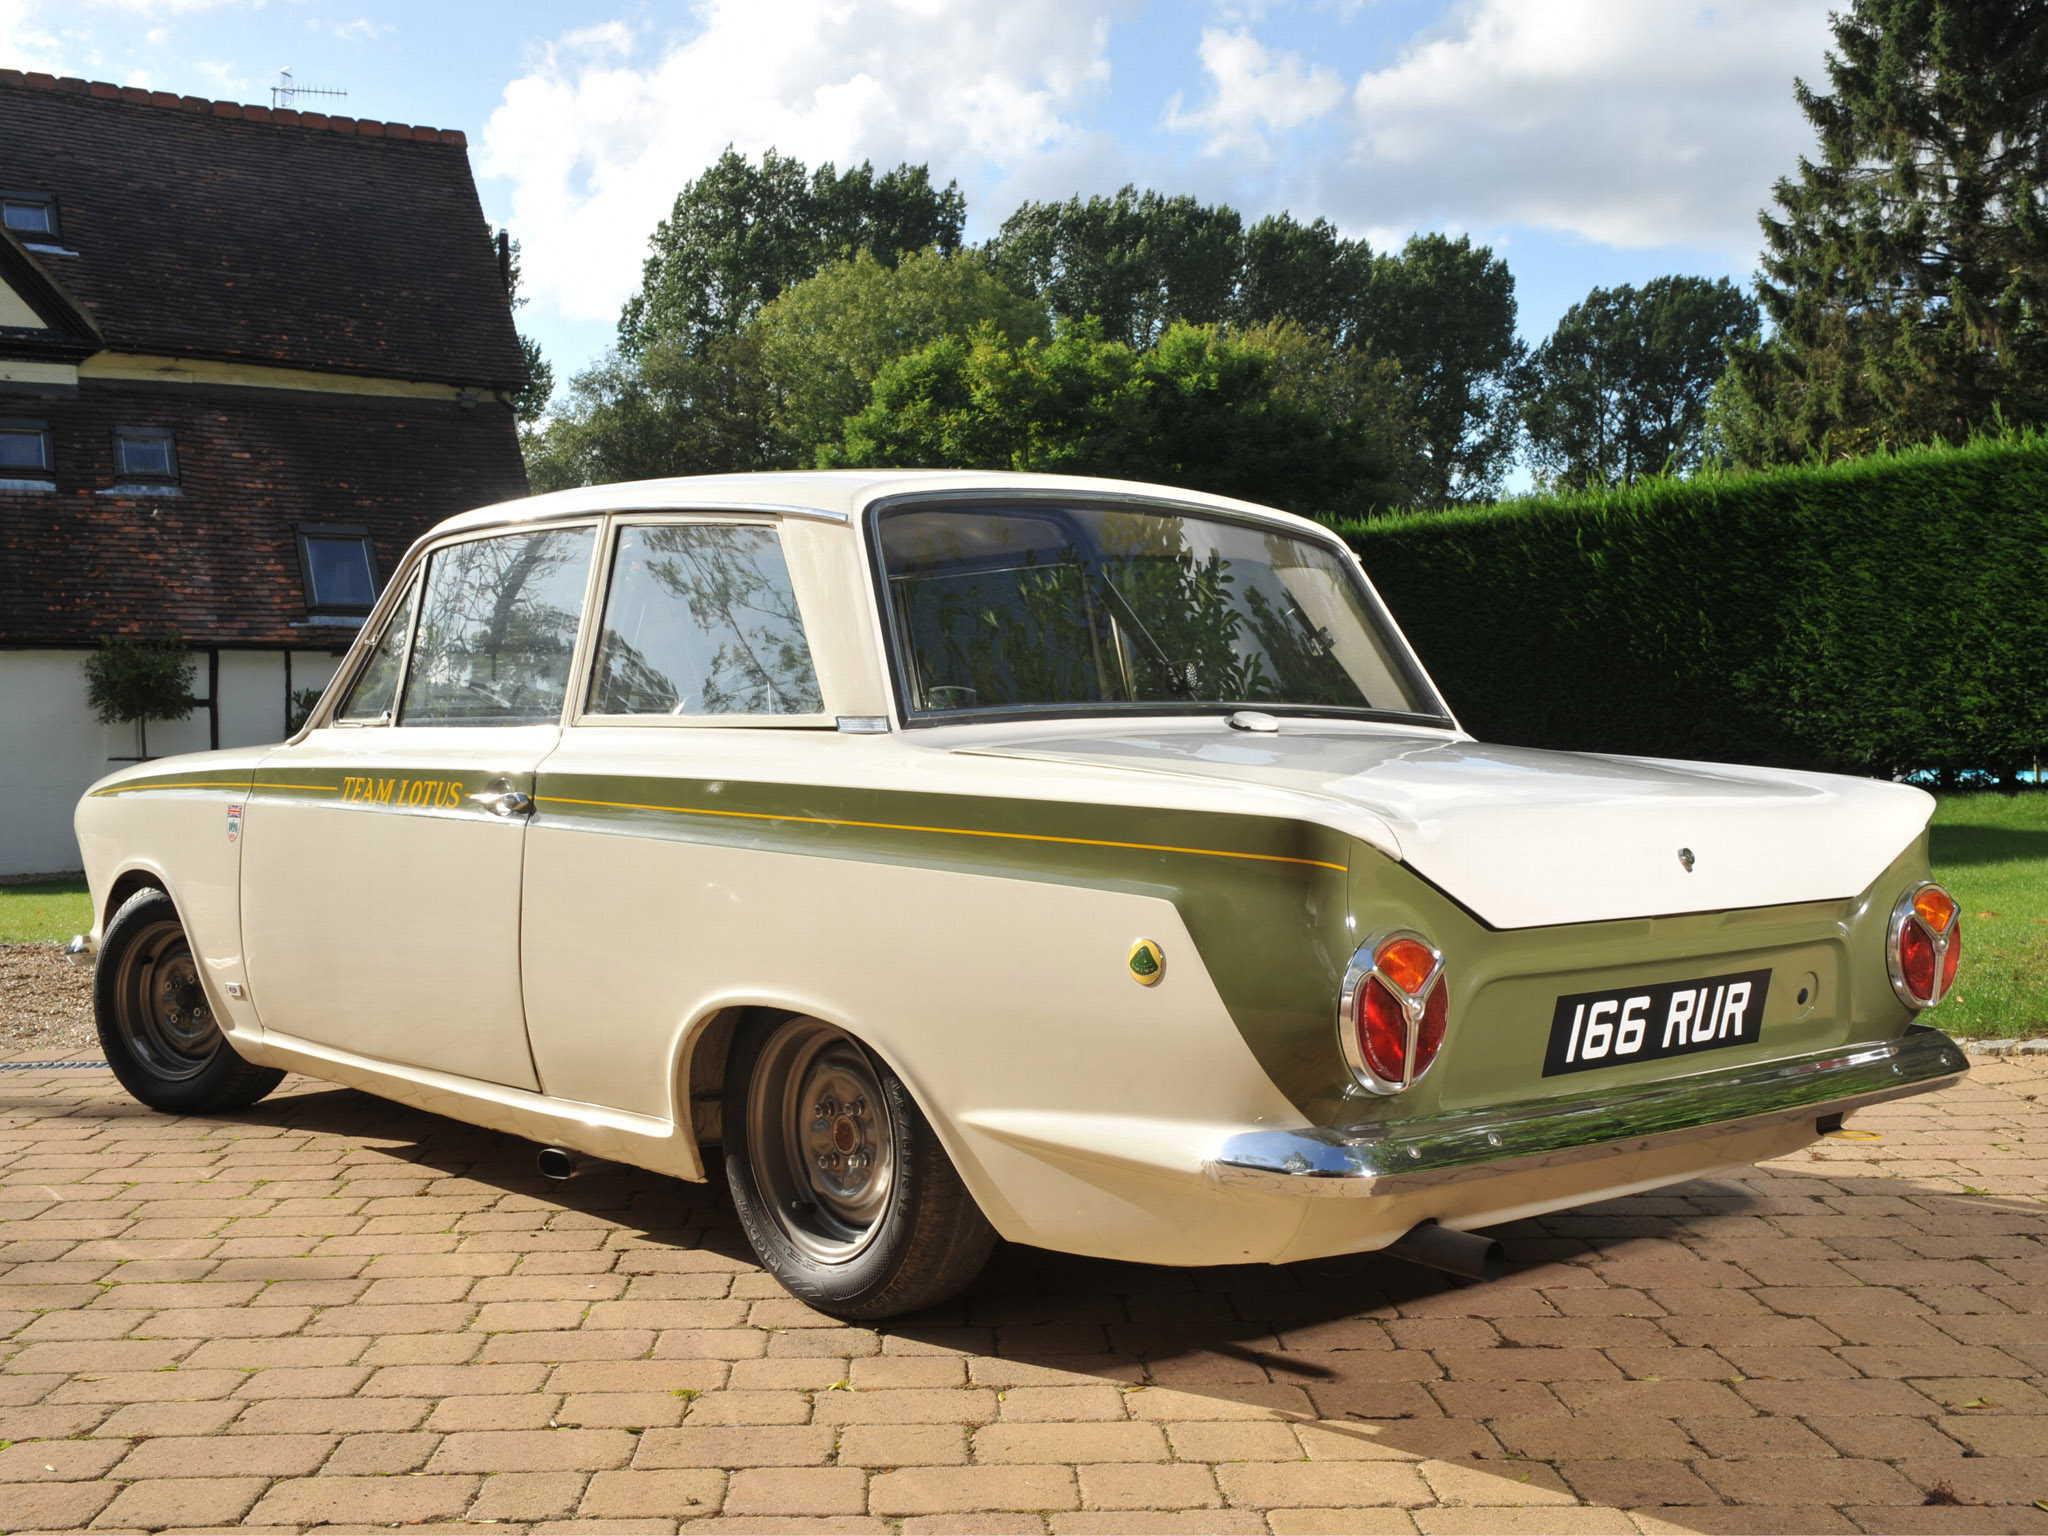 ford lotus cortina 1963 1966 ford lotus cortina 1963 1966 photo 08 car in pictures car photo. Black Bedroom Furniture Sets. Home Design Ideas